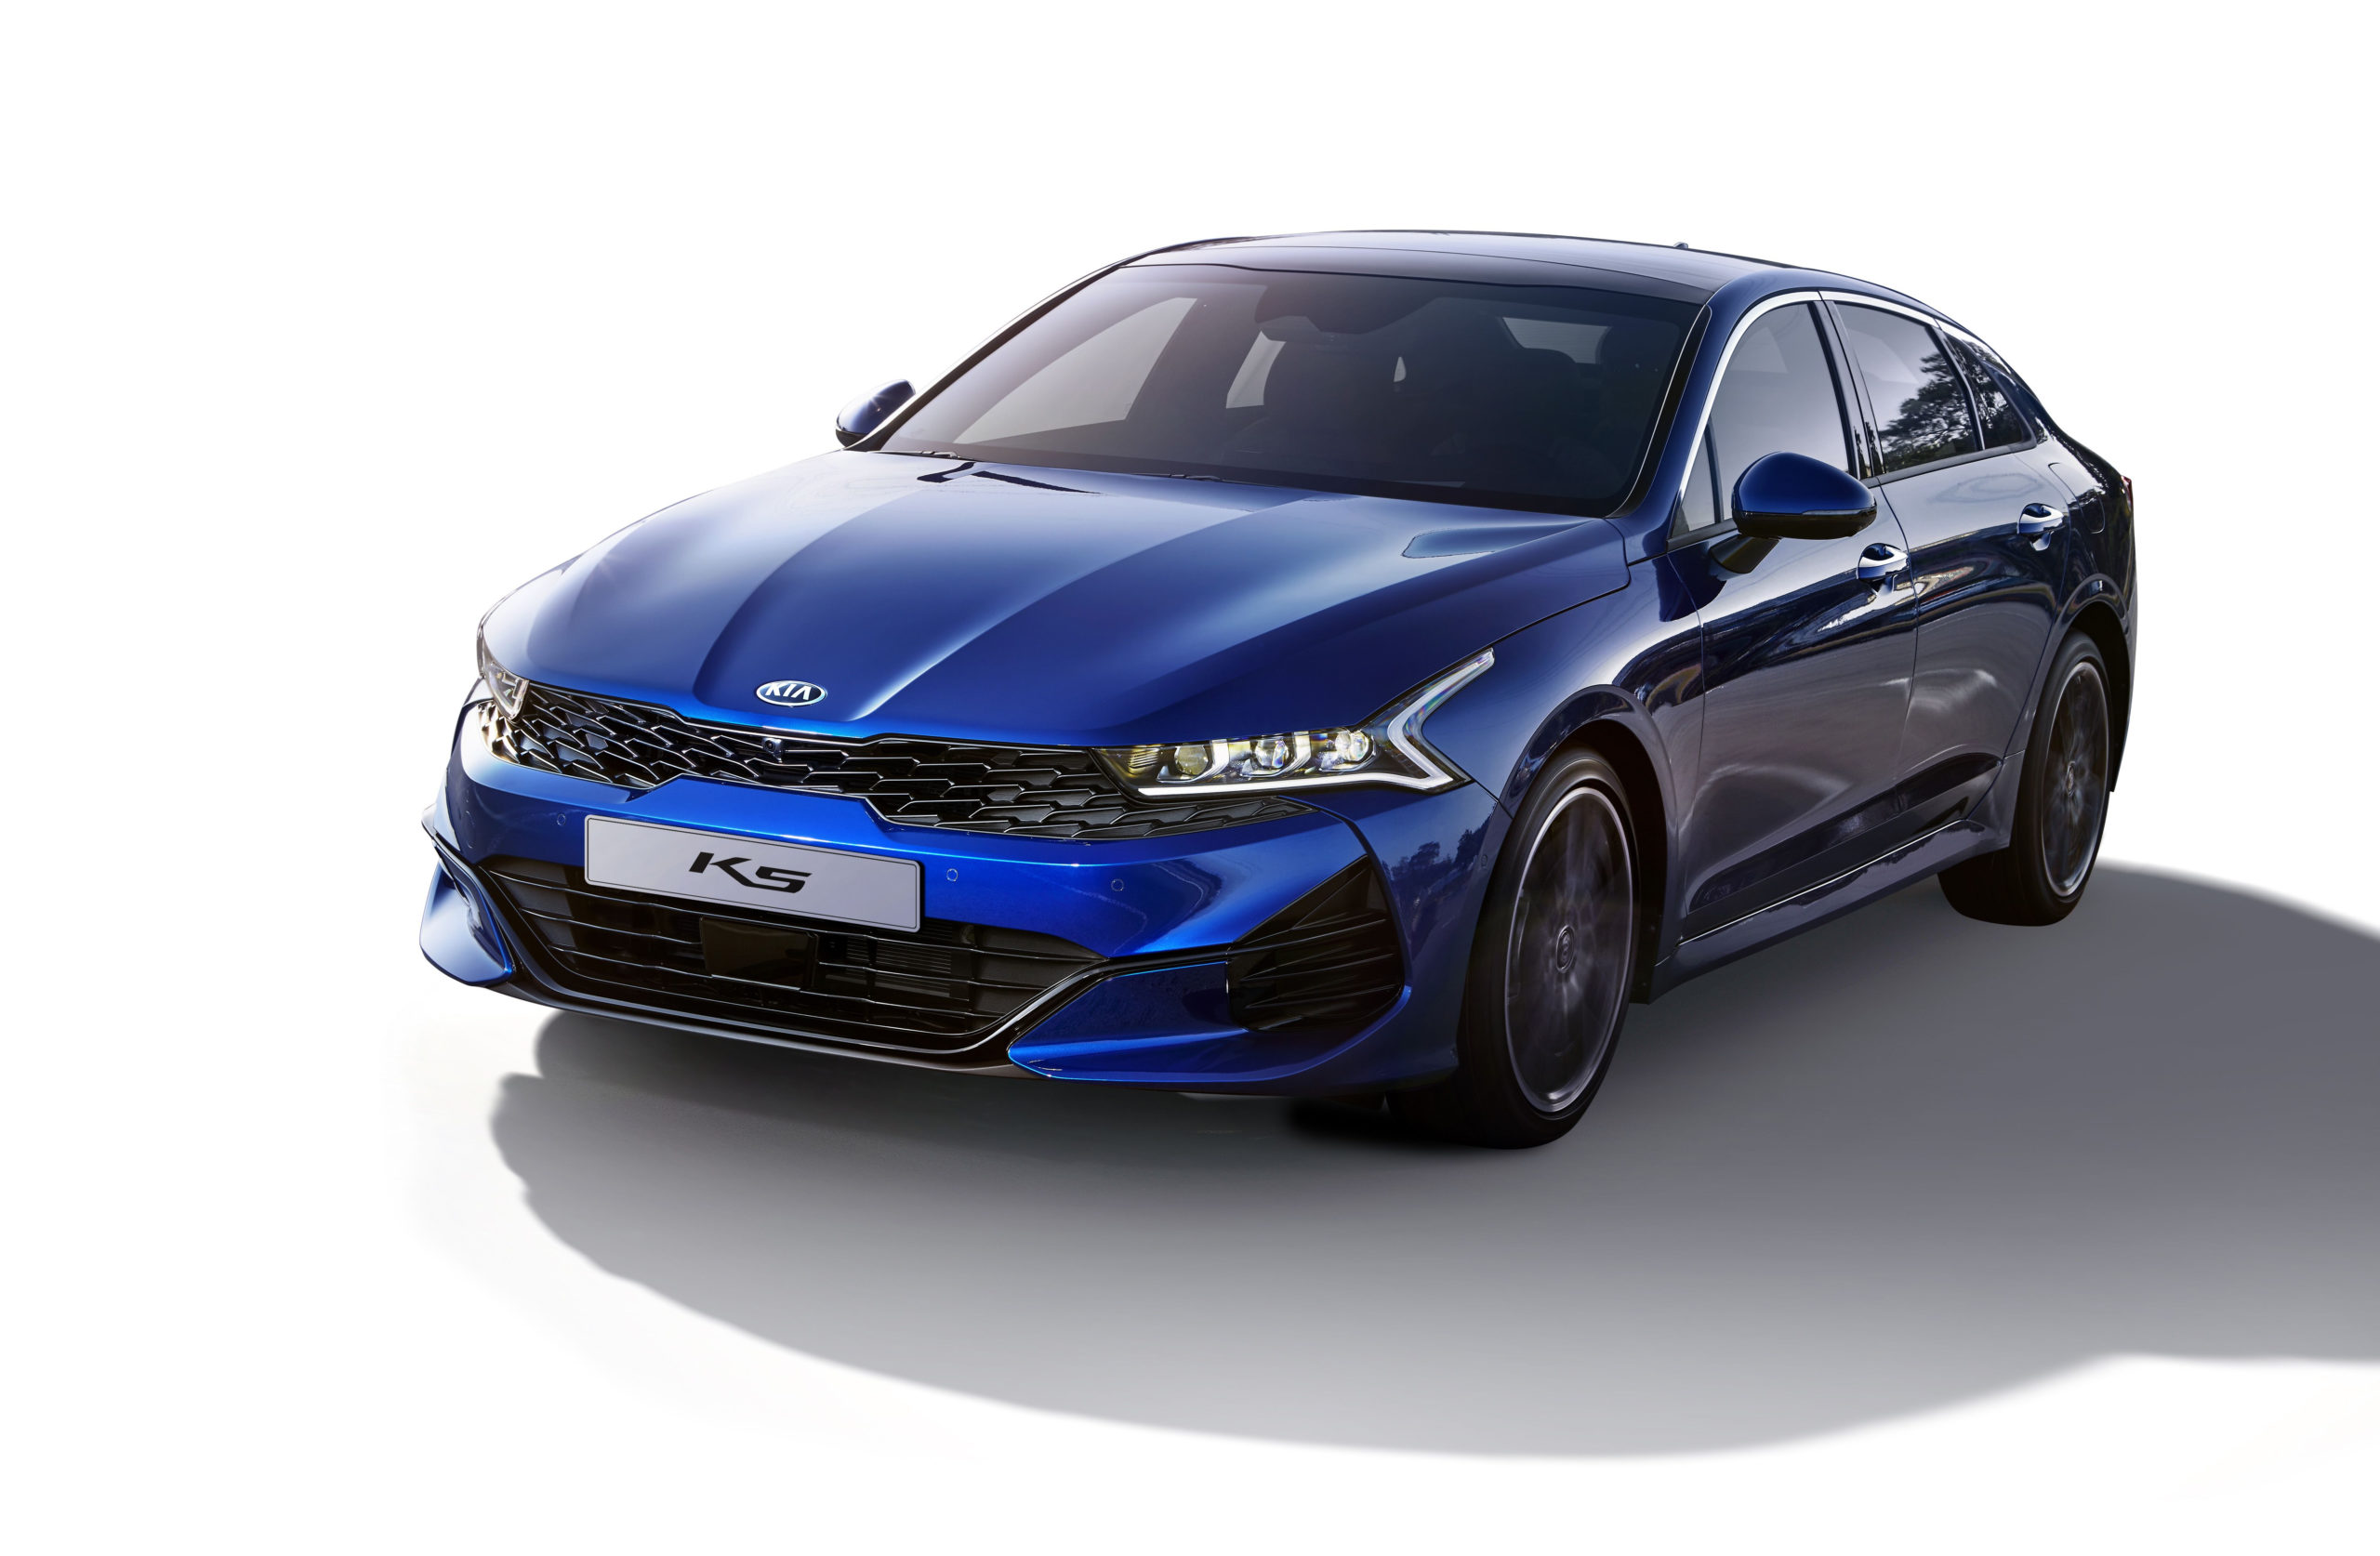 2021 Kia Optima Looks Sharp, Gets Awd - 2022 Kia Optima Plug-In Hybrid Rumor Release, Redesign